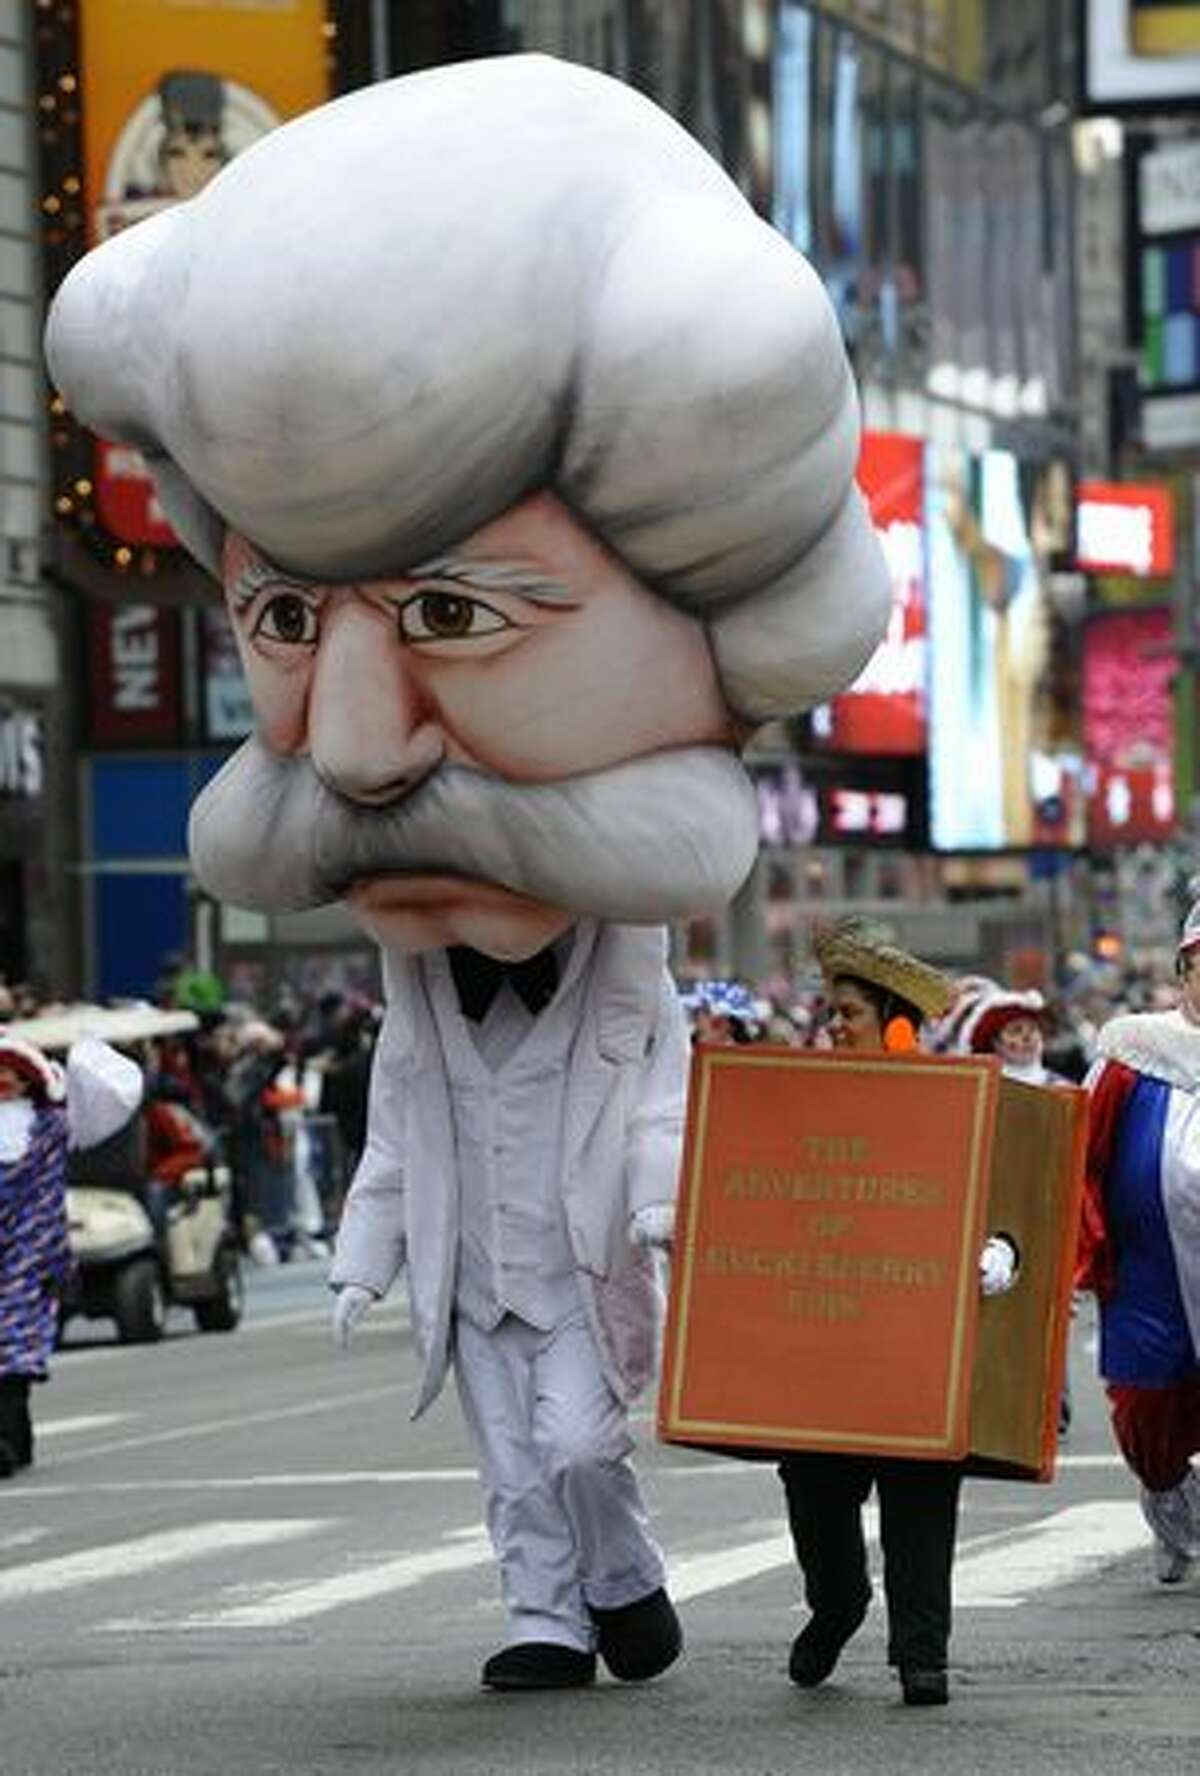 A person dressed as author Mark Twain comes down 7th Ave in Times Square joining the giant balloon lineup for the 84th annual Macy's Thanksgiving Day Parade in New York. AFP PHOTO / (TIMOTHY A. CLARY/AFP/Getty Images)